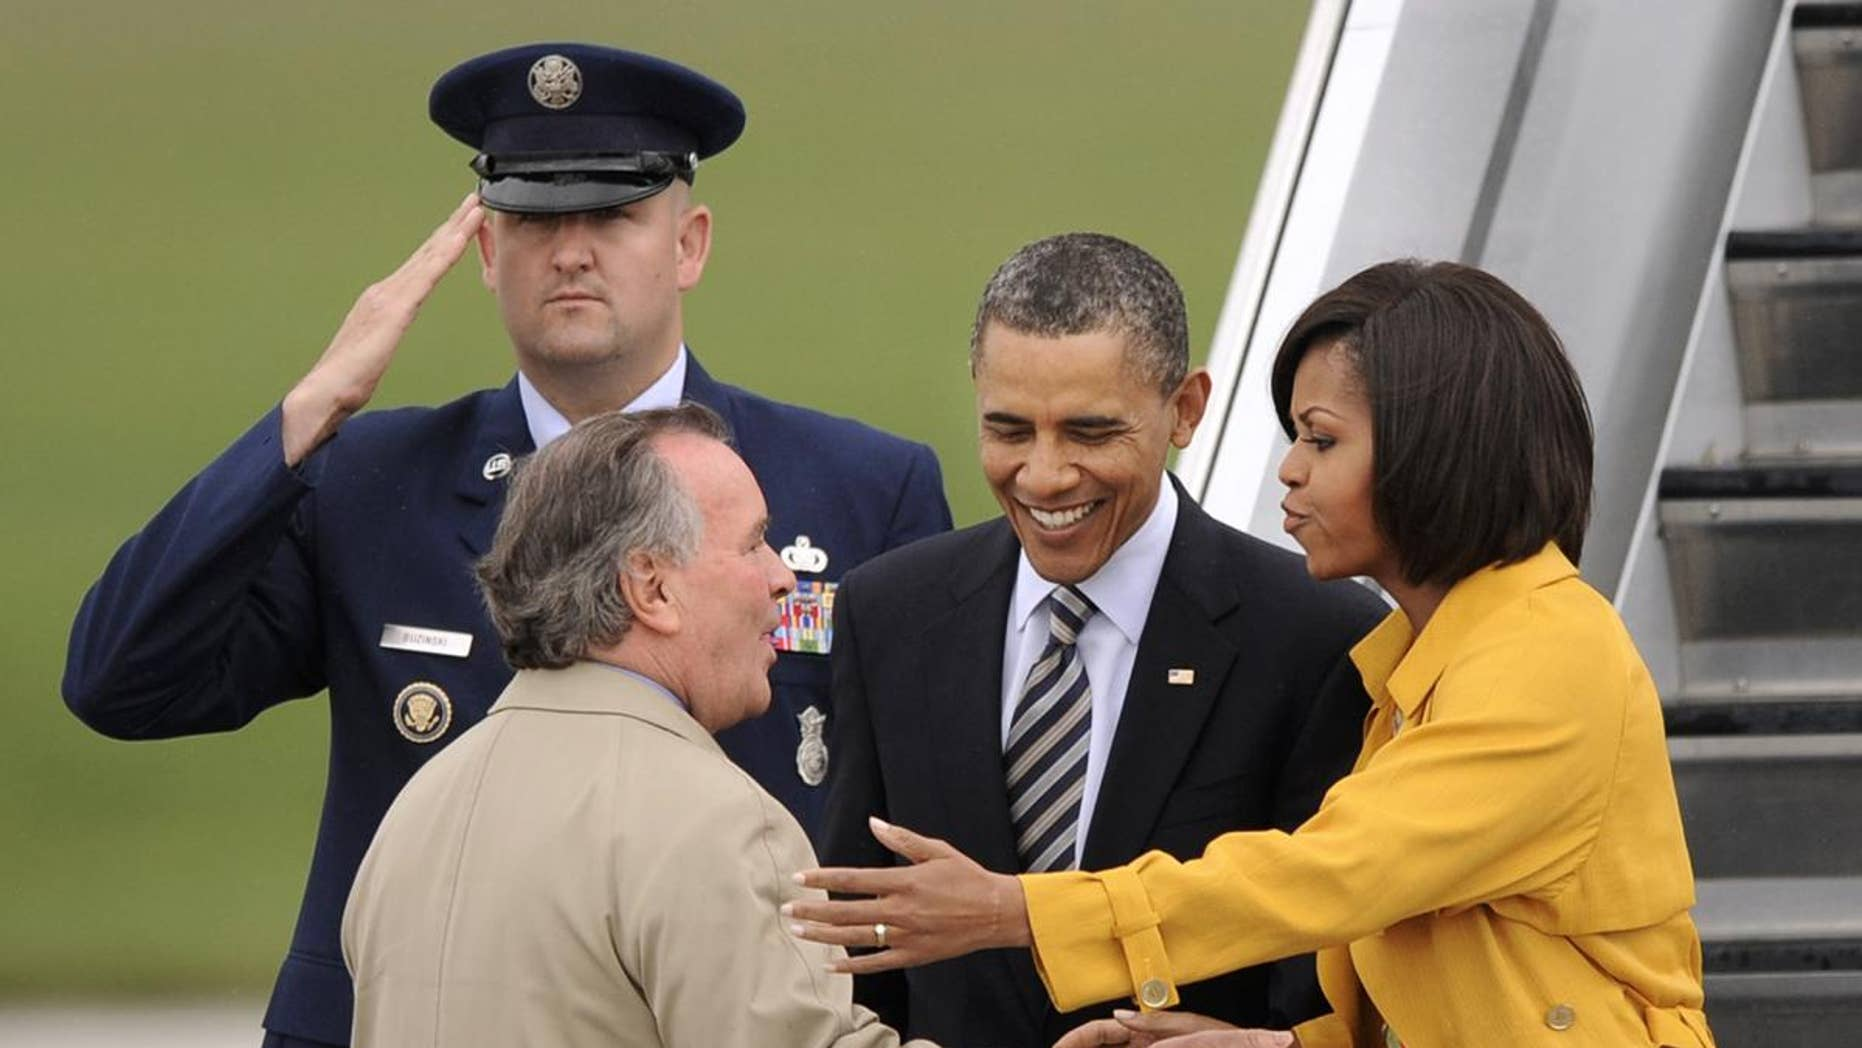 President Barack Obama and first lady Michelle Obama are greeted by Chicago Mayor Richard M. Daley upon their arrival at Chicago O'Hare International Airport in Chicago, Wednesday, April 27, 2011. (AP Photo/Paul Beaty)